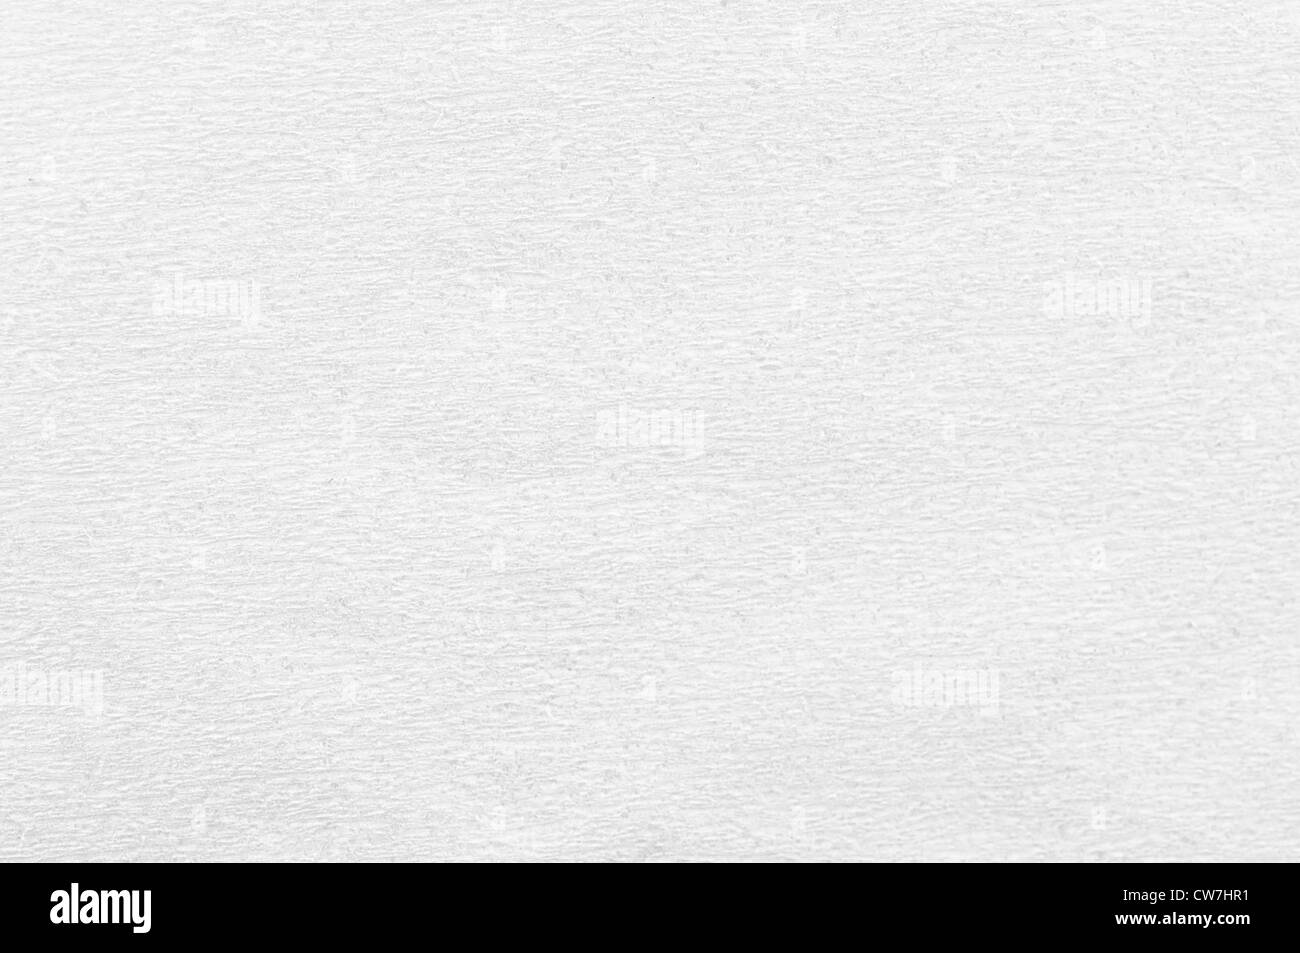 White paper texture or background - Stock Image